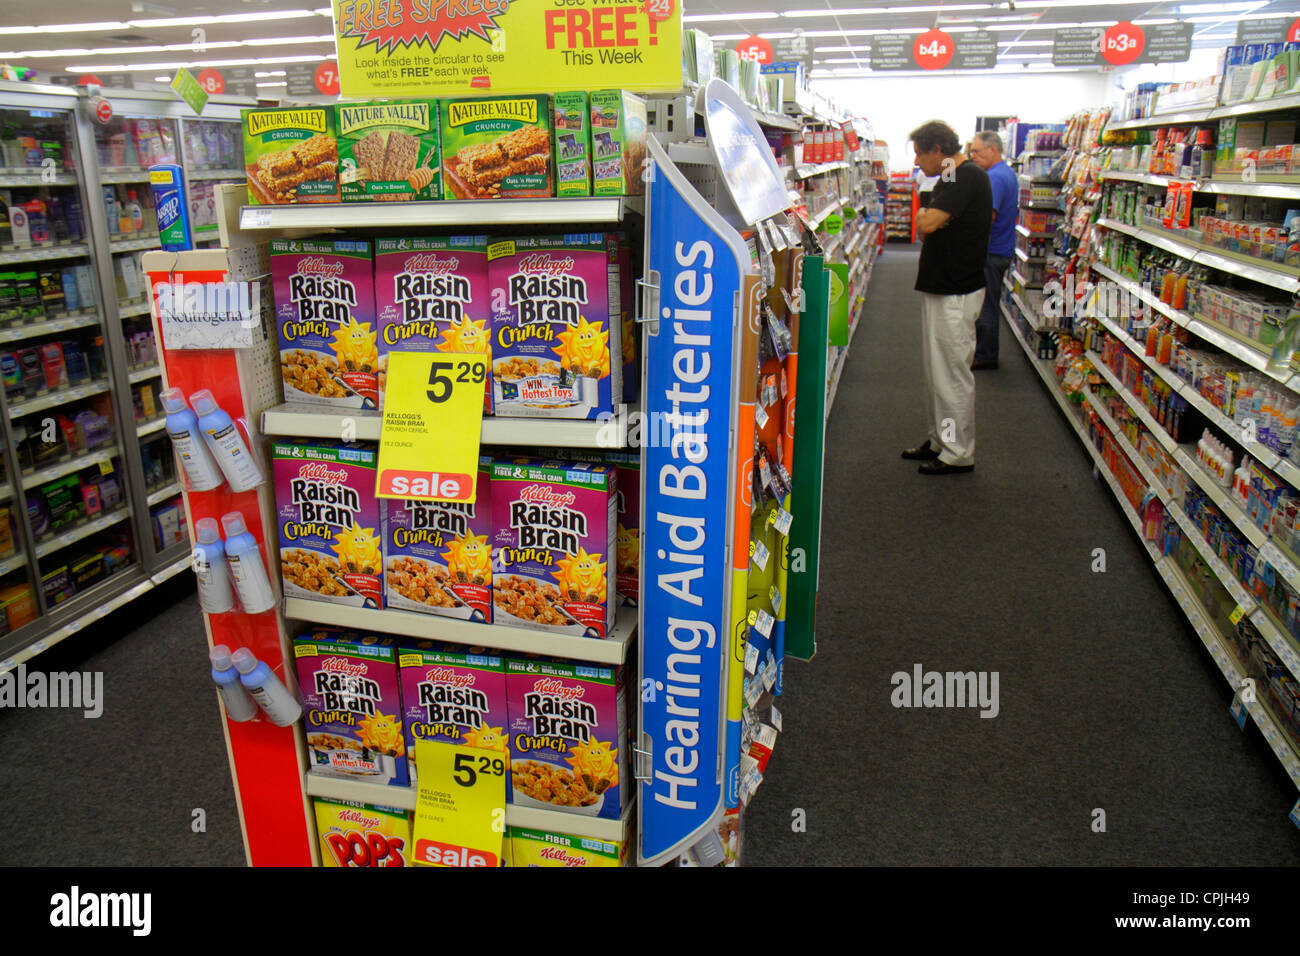 r stock photos r stock images alamy miami beach florida walgreens pharmacy drugstore business retail display shelves packaging for aisle cereal